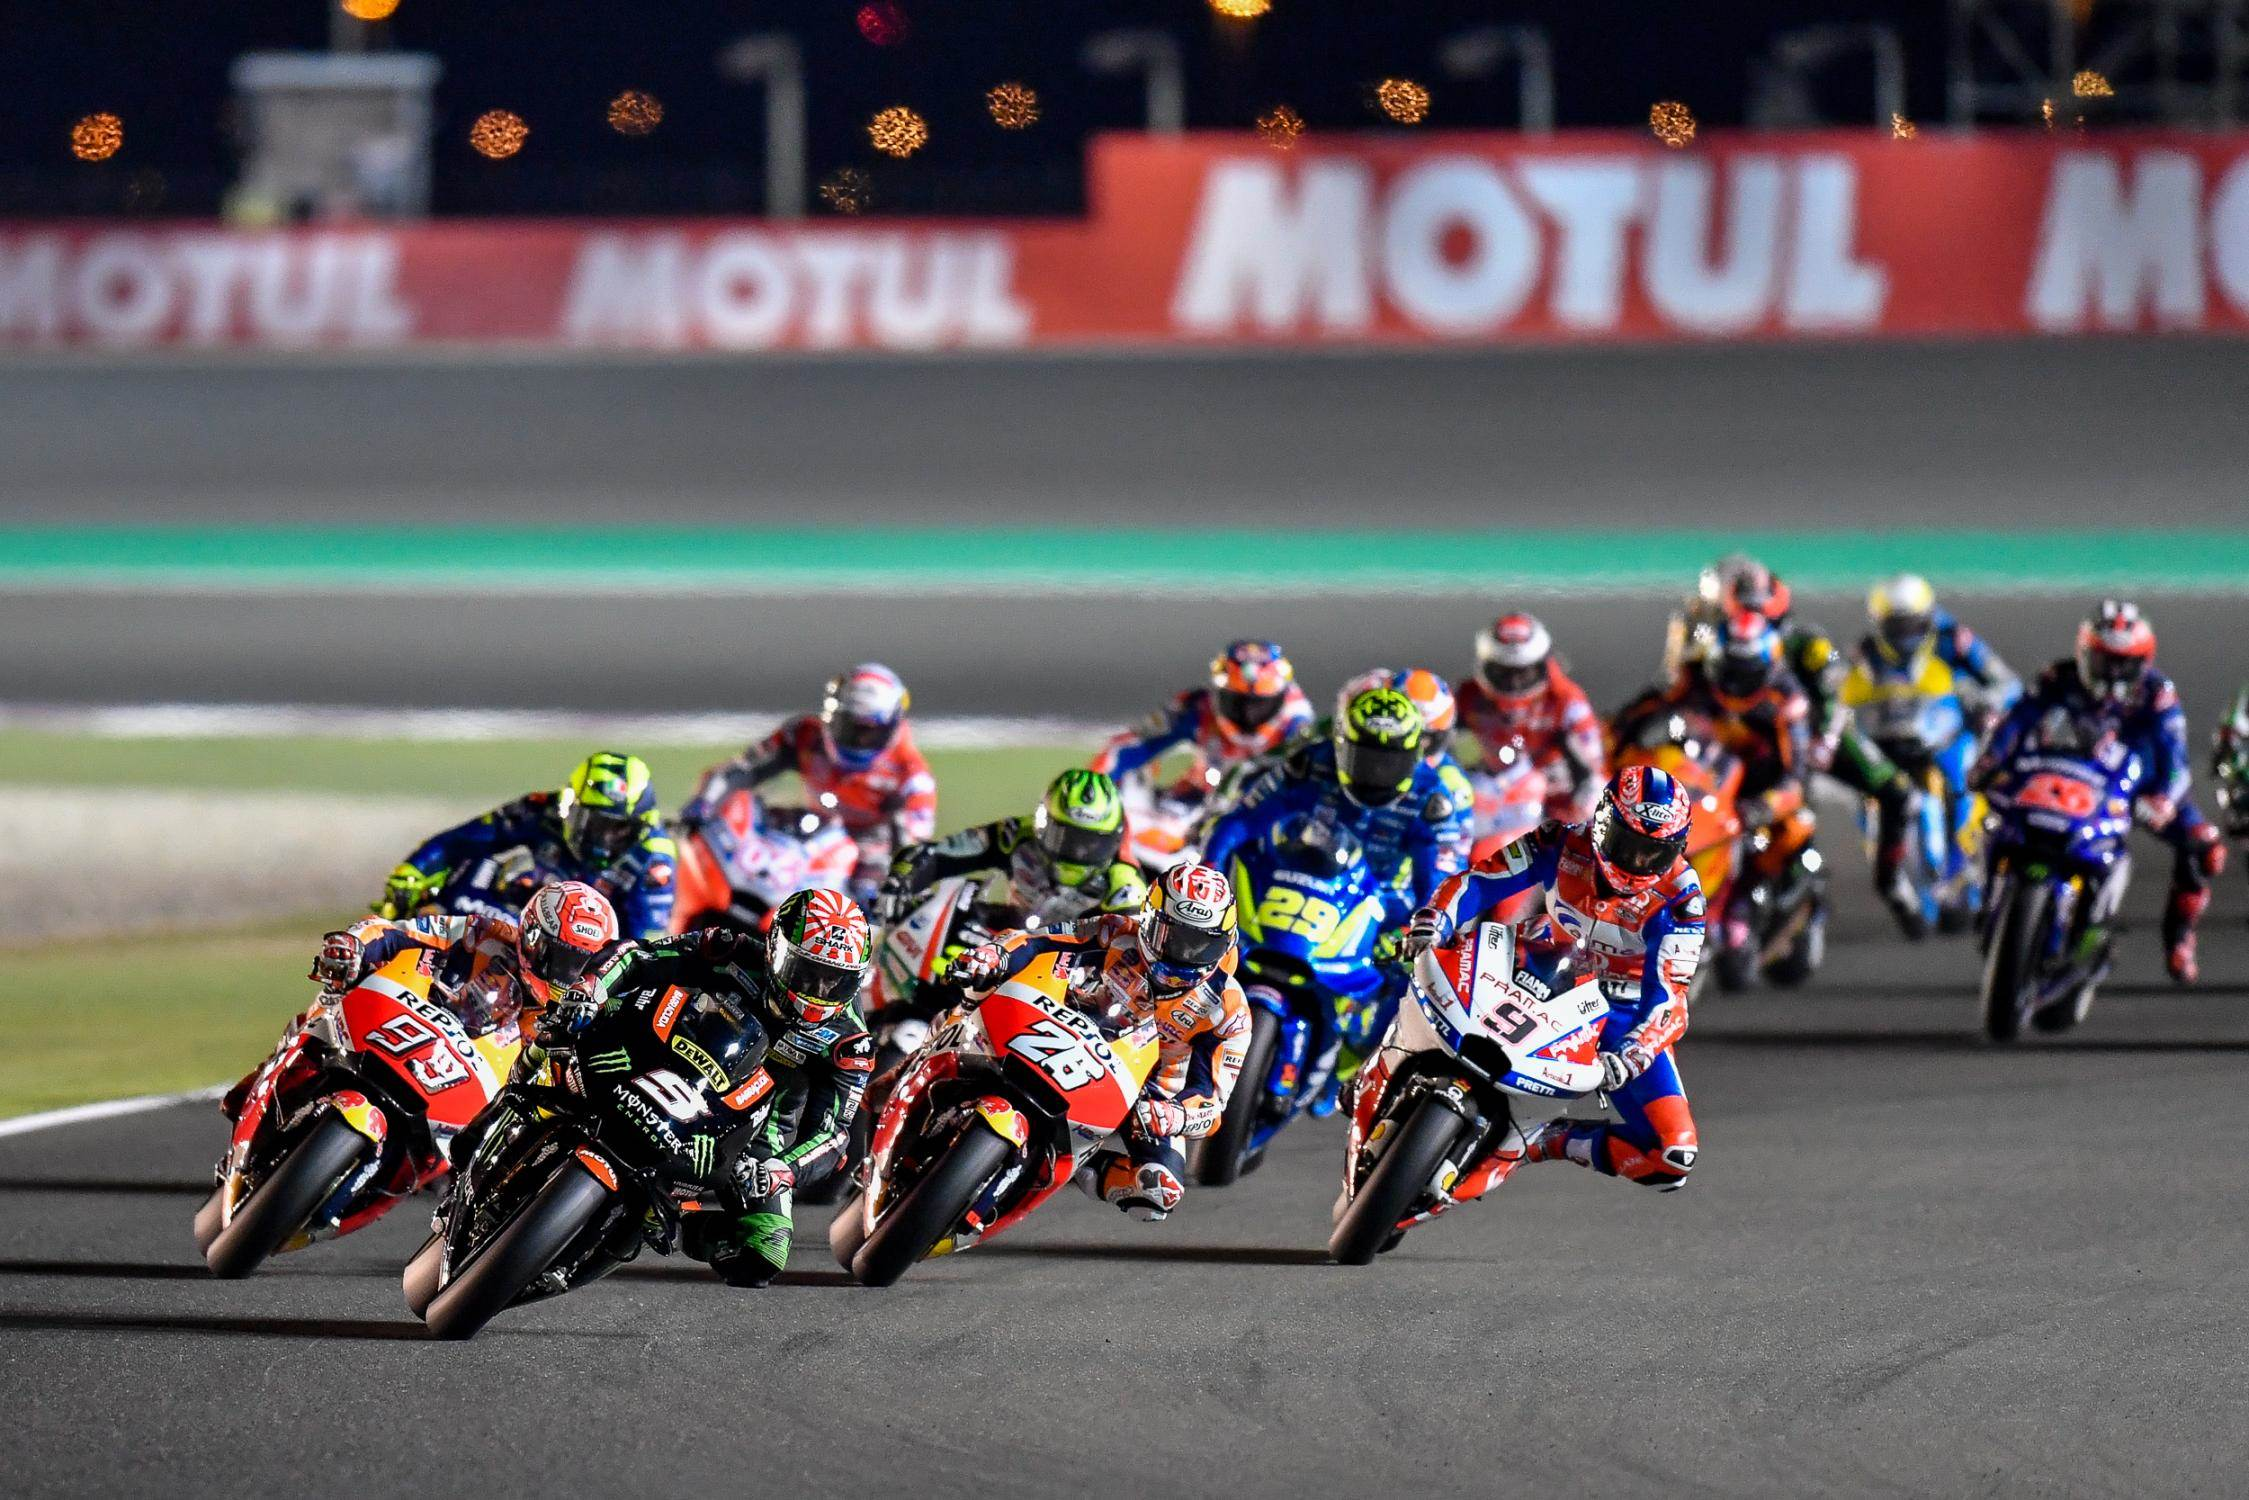 2018 Qatar MotoGP race report